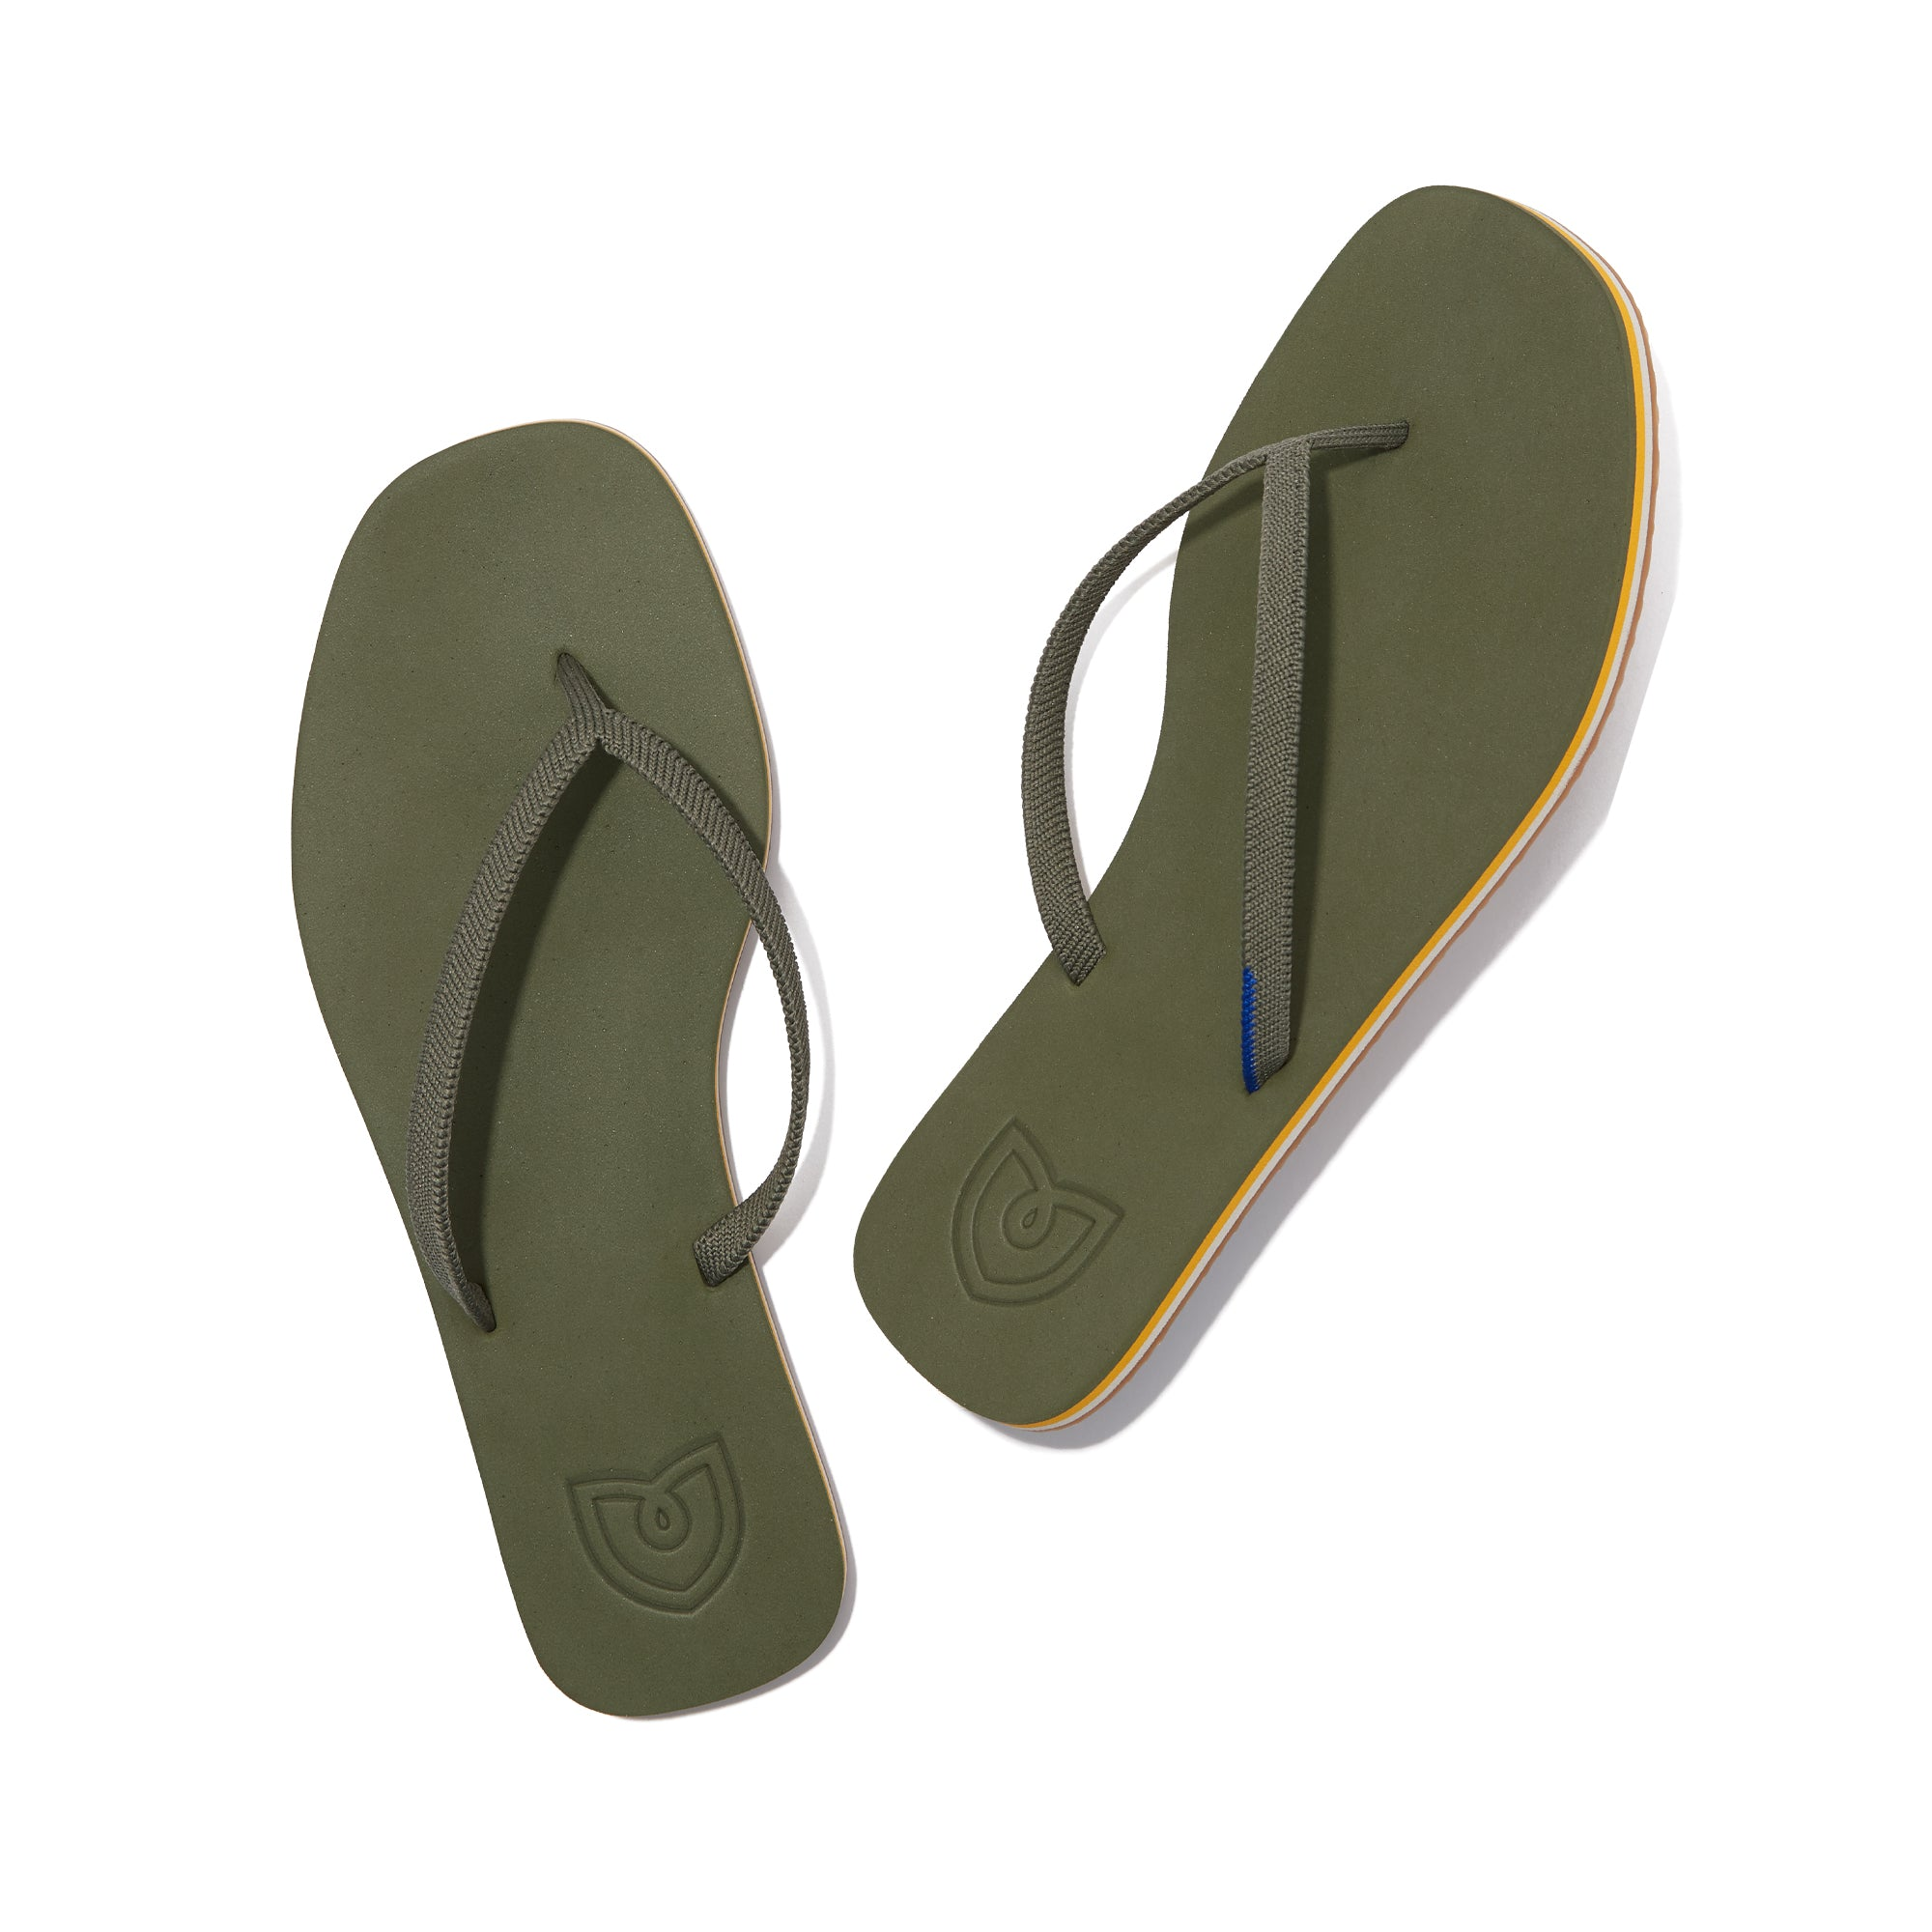 A pair of The Flip Flop sandals in Grasshopper shown from the top view.